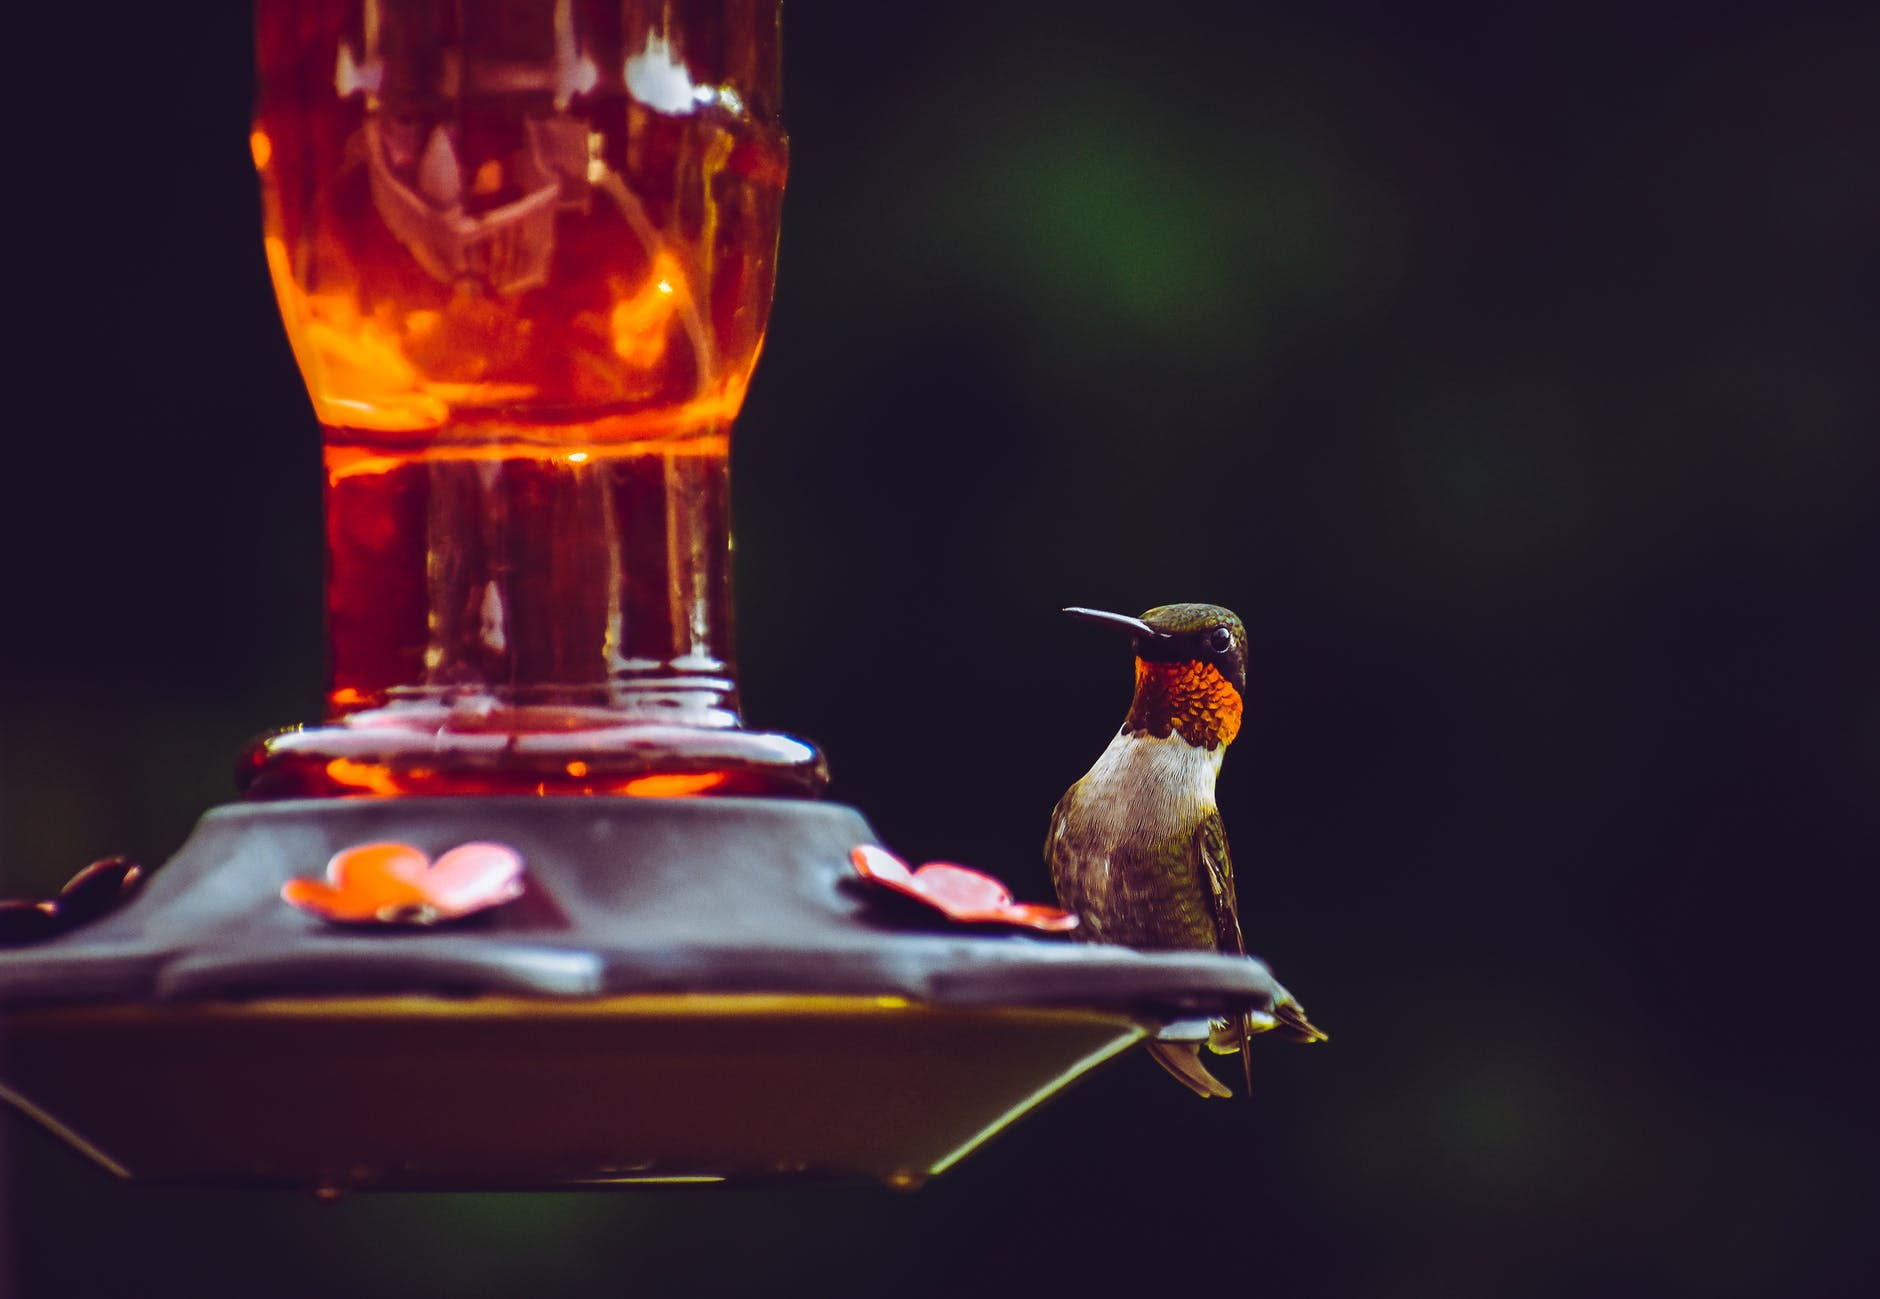 selective focus photography of ruby throated hummingbird perched on bird feeder